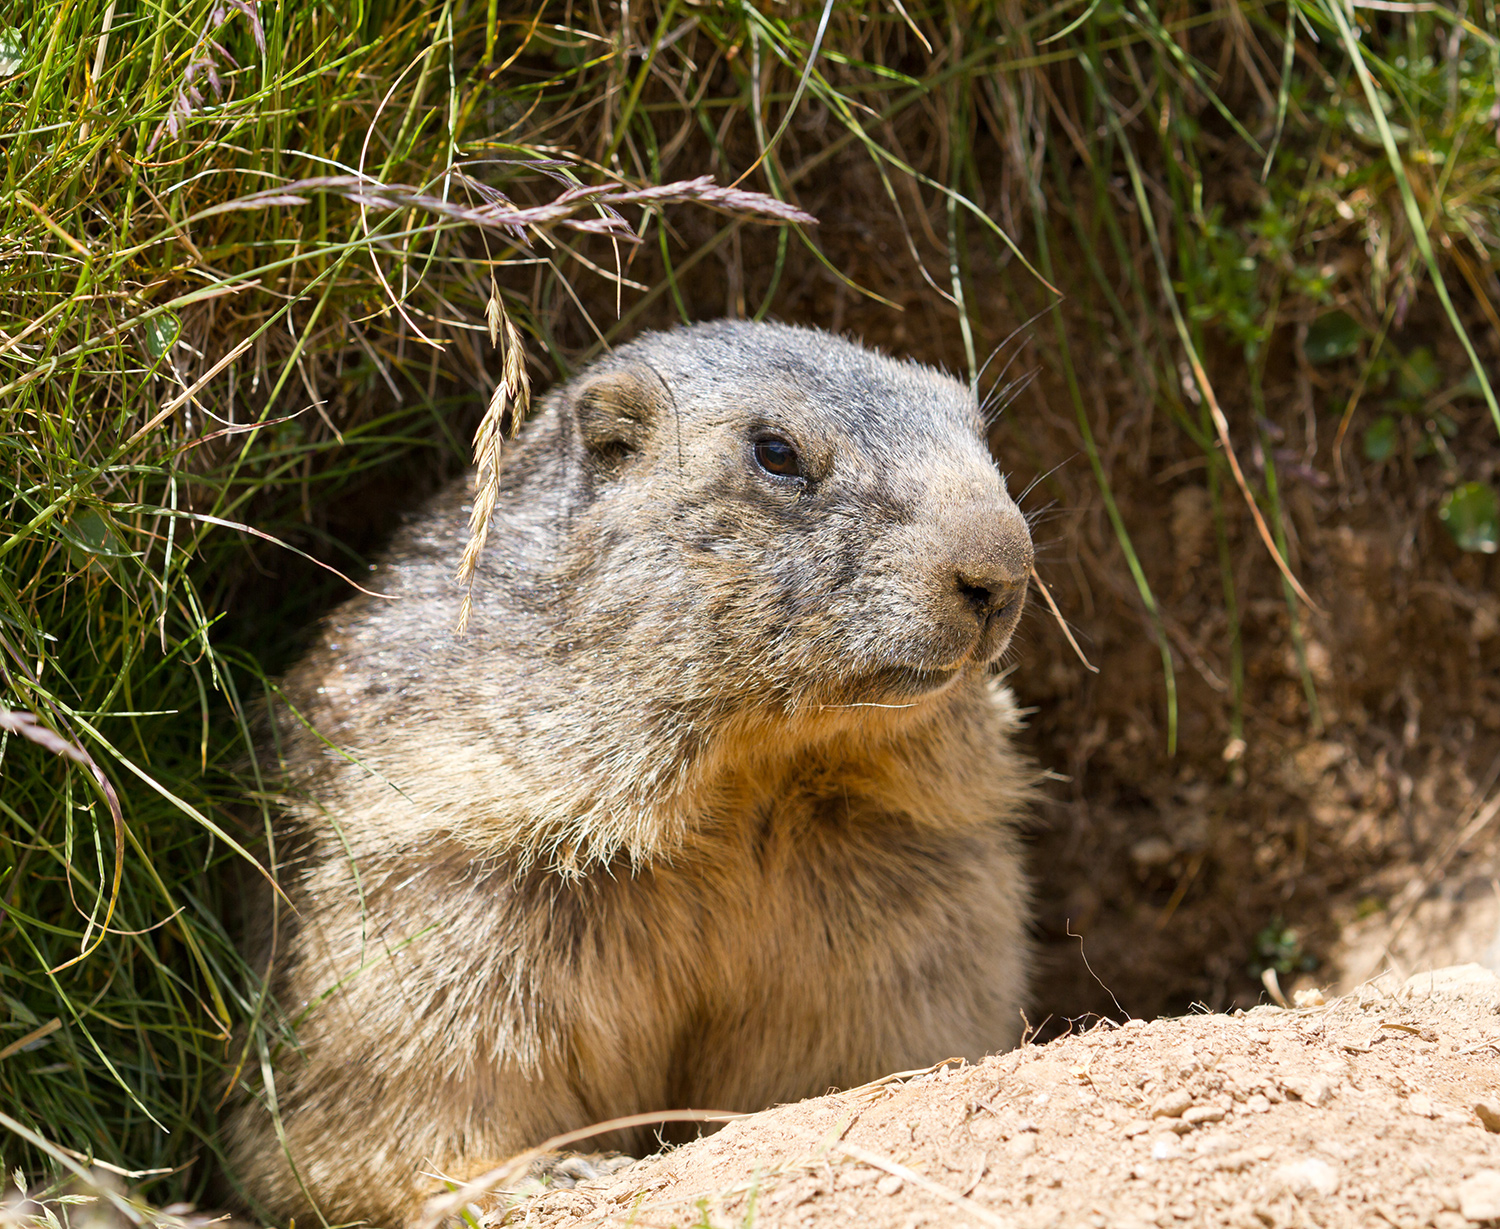 grumpy looking groundhog looking out of hole